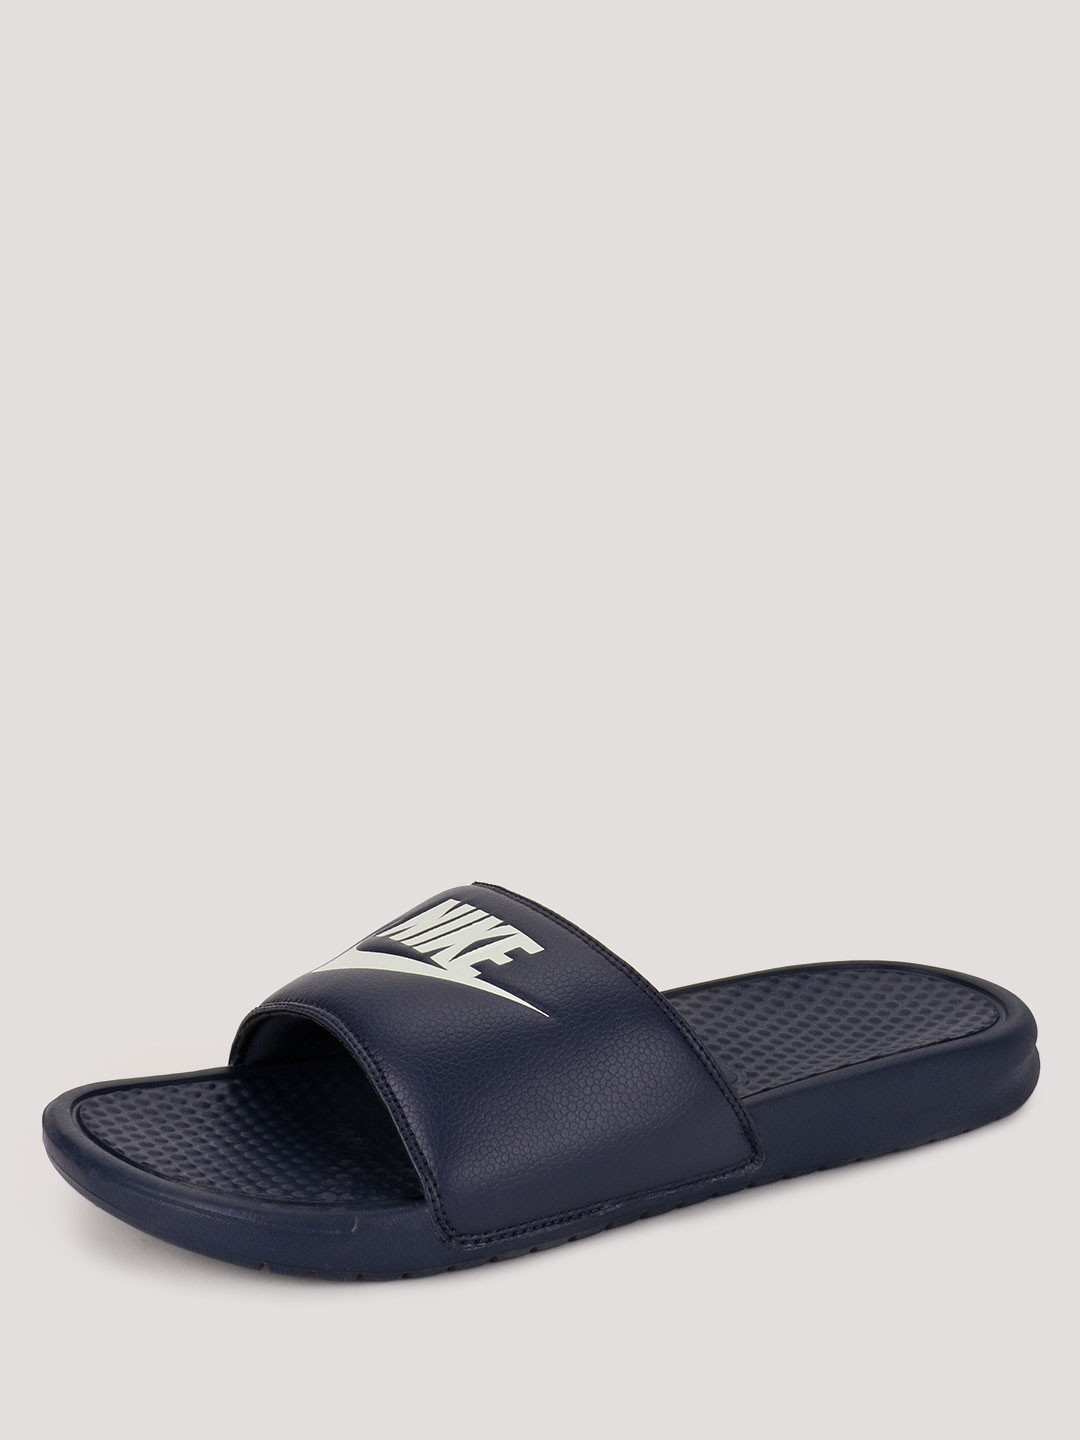 Nike Navy Benassi Sliders 1